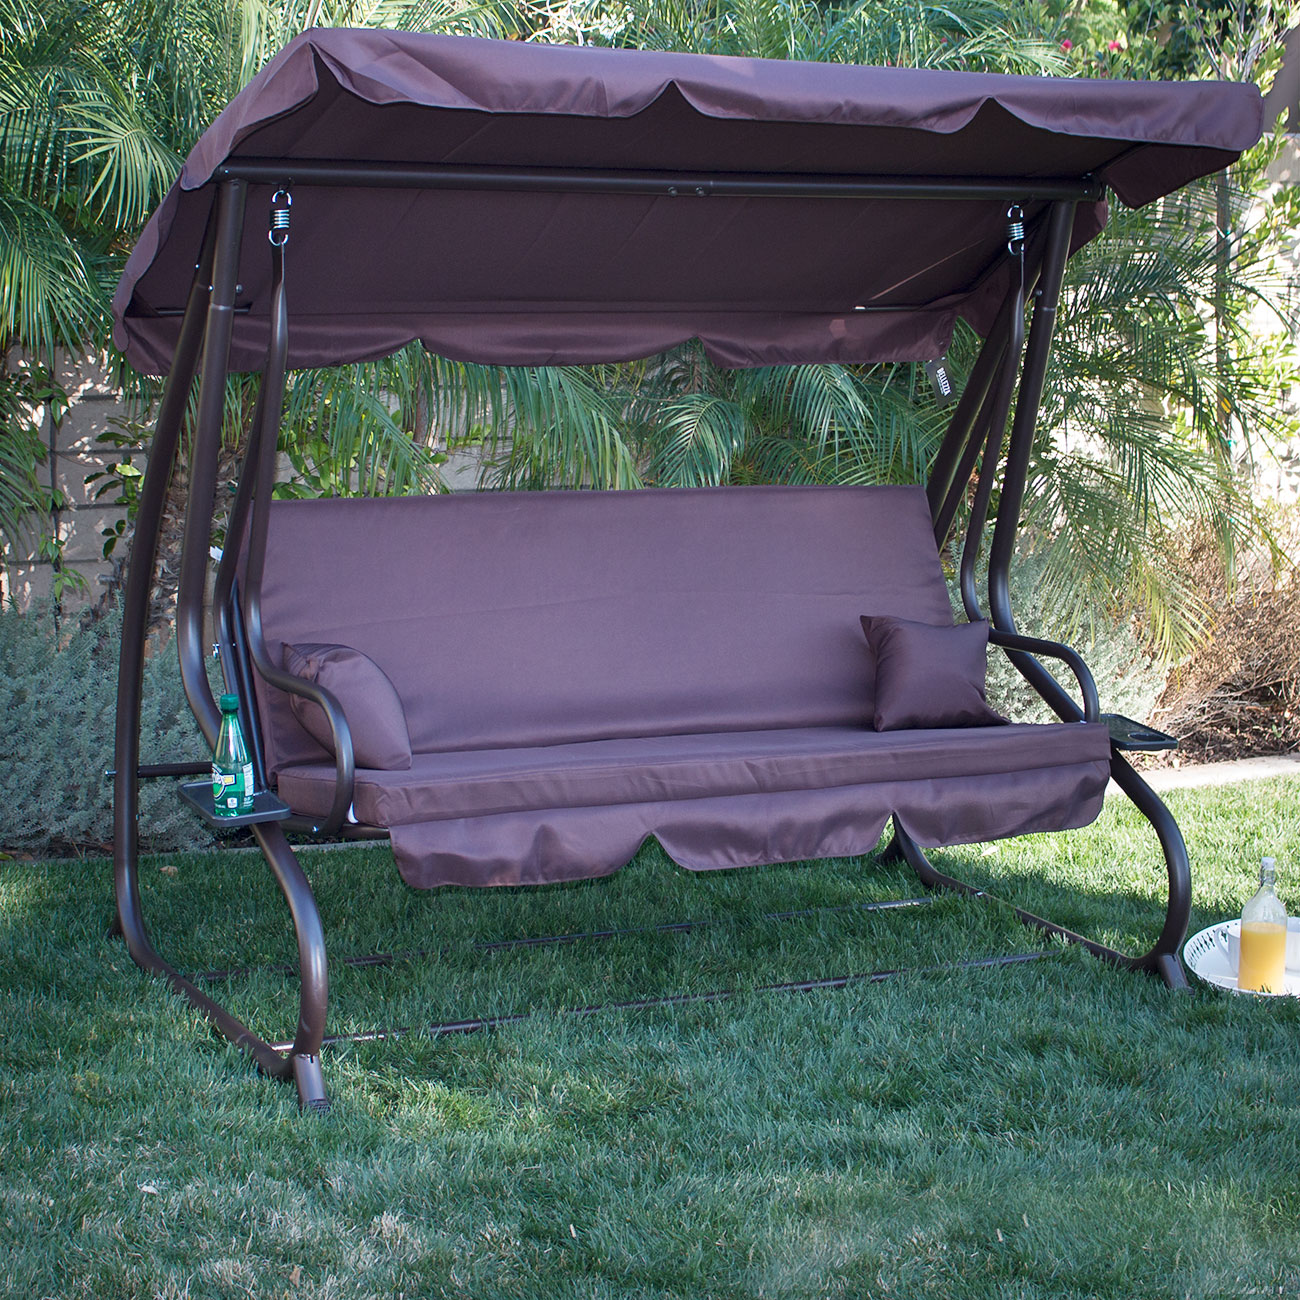 Belleze Patio Outdoor Padded Porch Swing Bed with